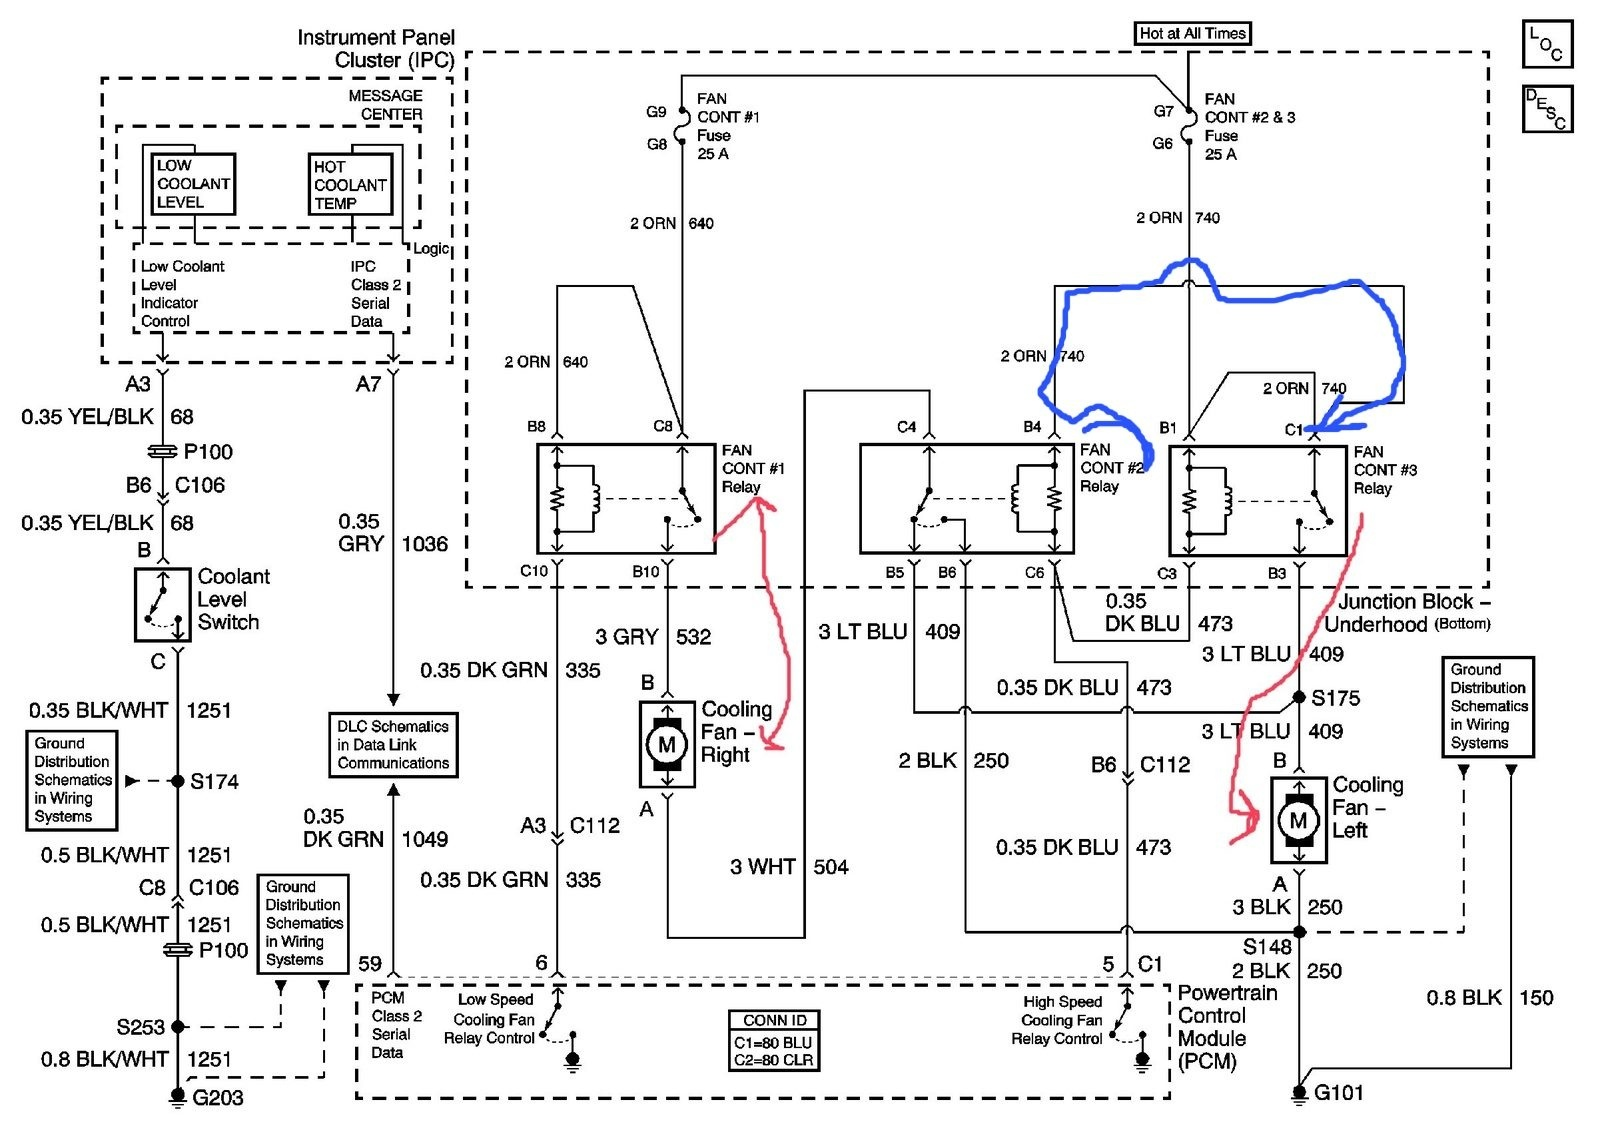 2001 Chevy Malibu Fan Relay Diagram Great Installation Of Wiring 2000 Chevrolet Fuse Box Impala Questions Location Cooling Cargurus Rh Com Parts Diagrams